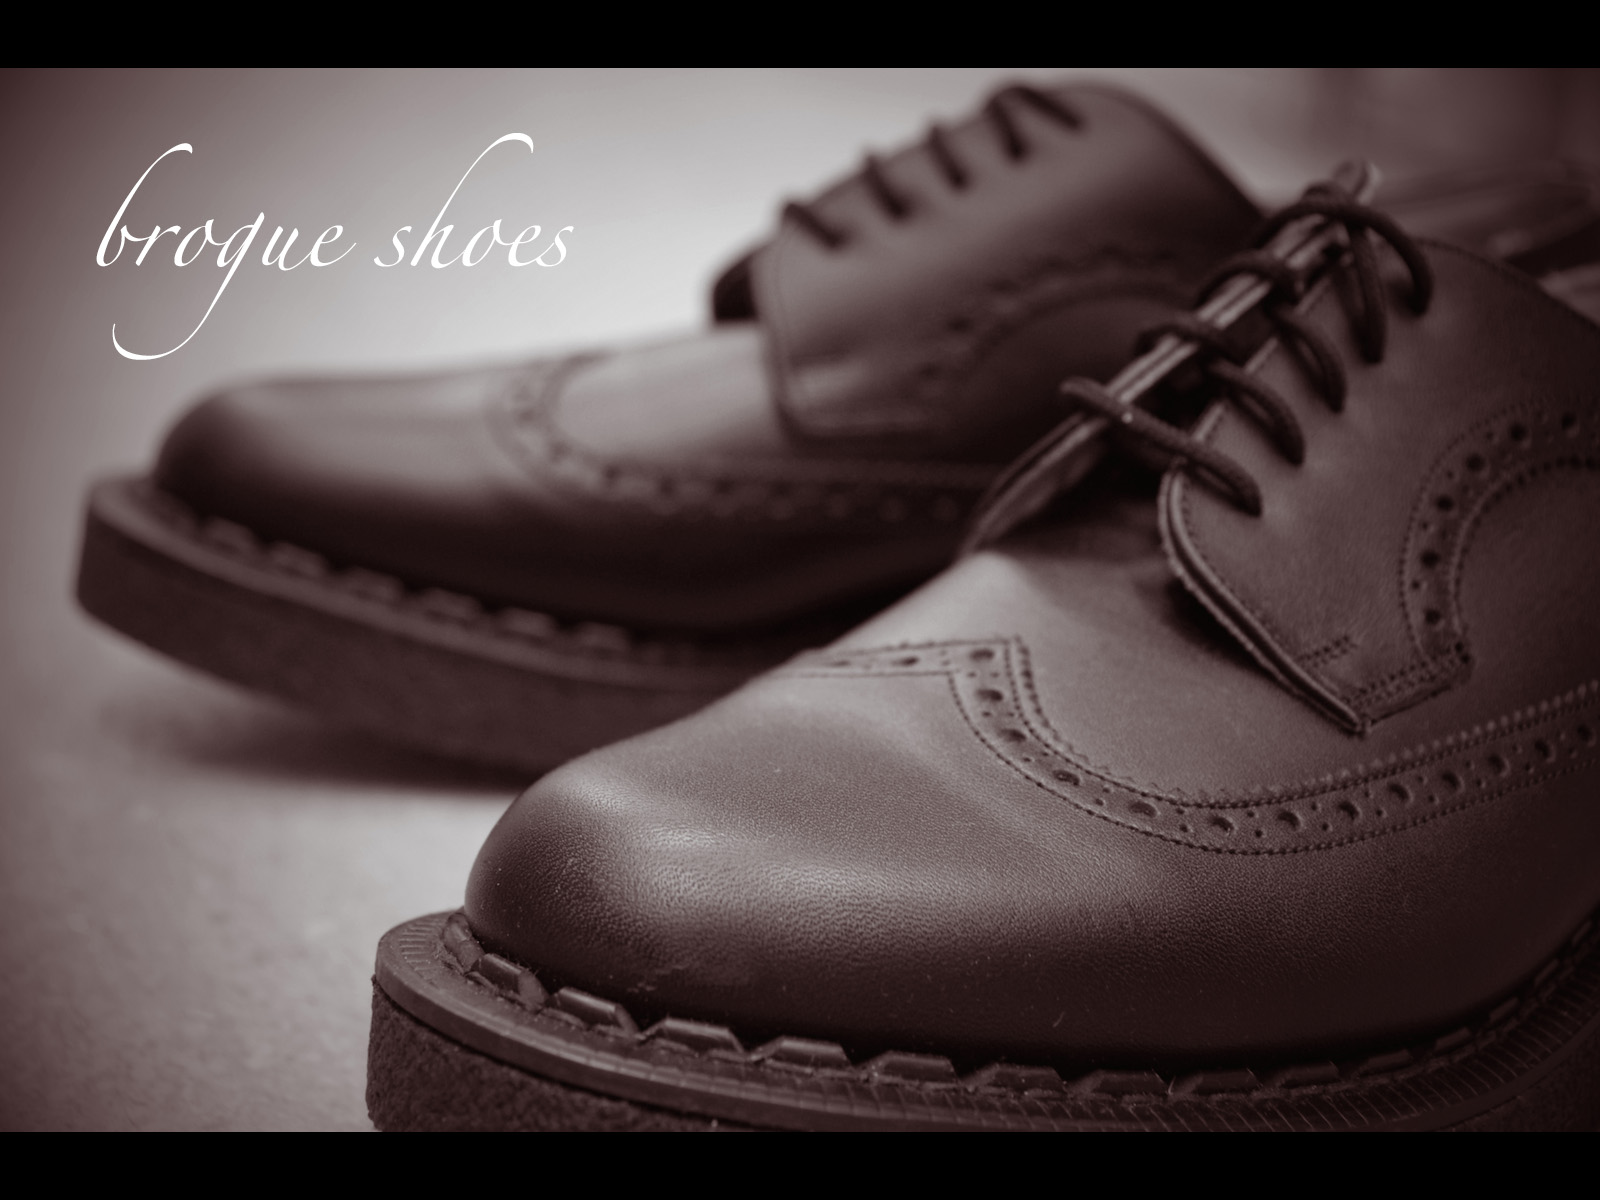 STORY OF BROGUE SHOES